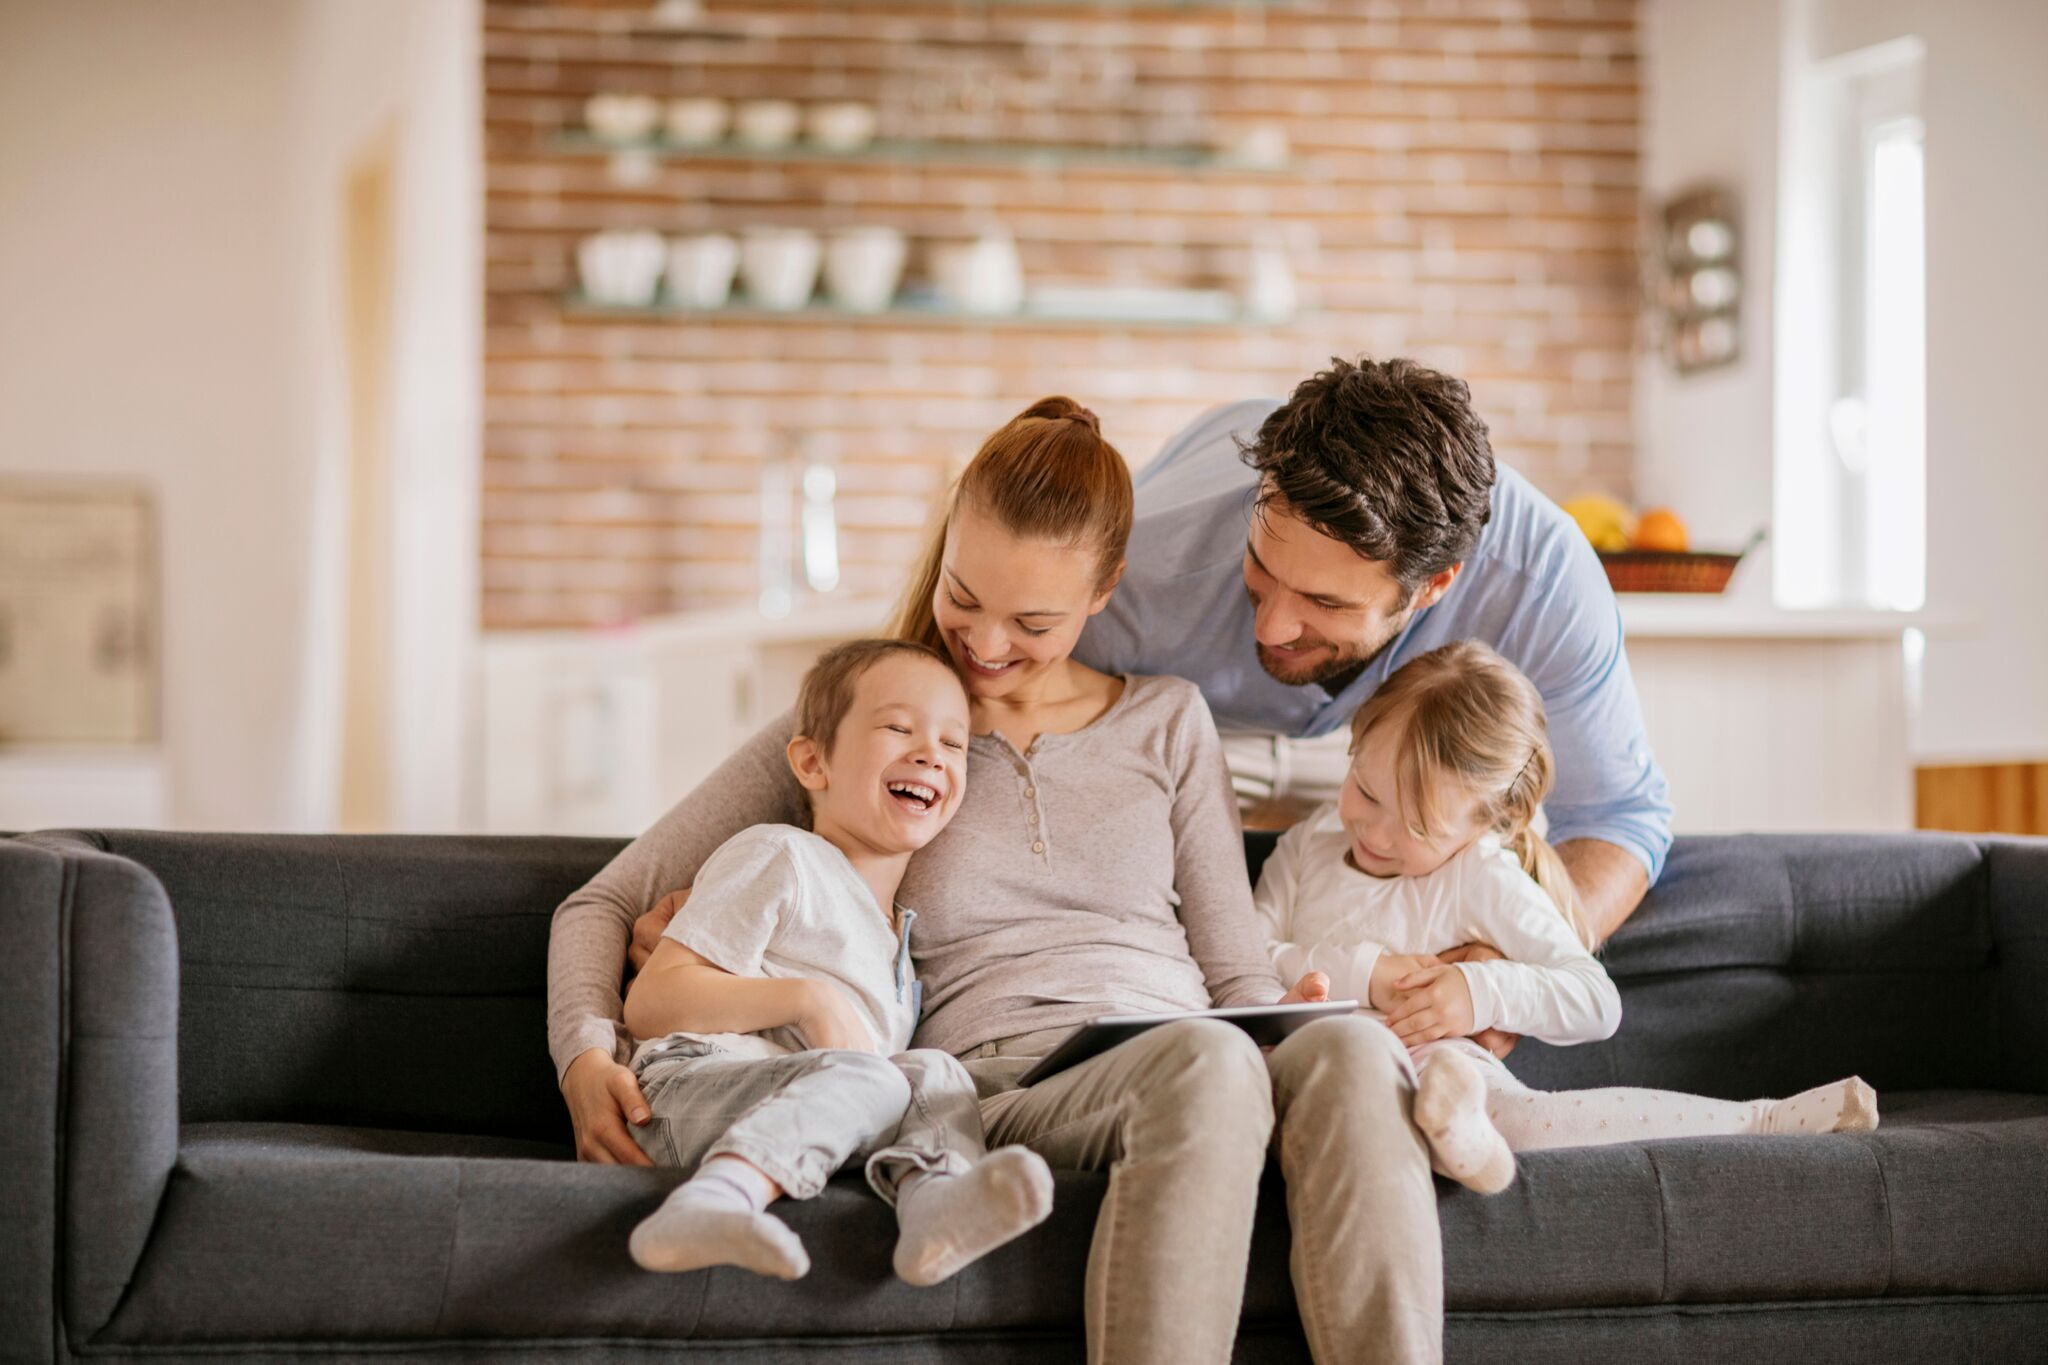 How to spot the perfect family home | realestateview.com.au